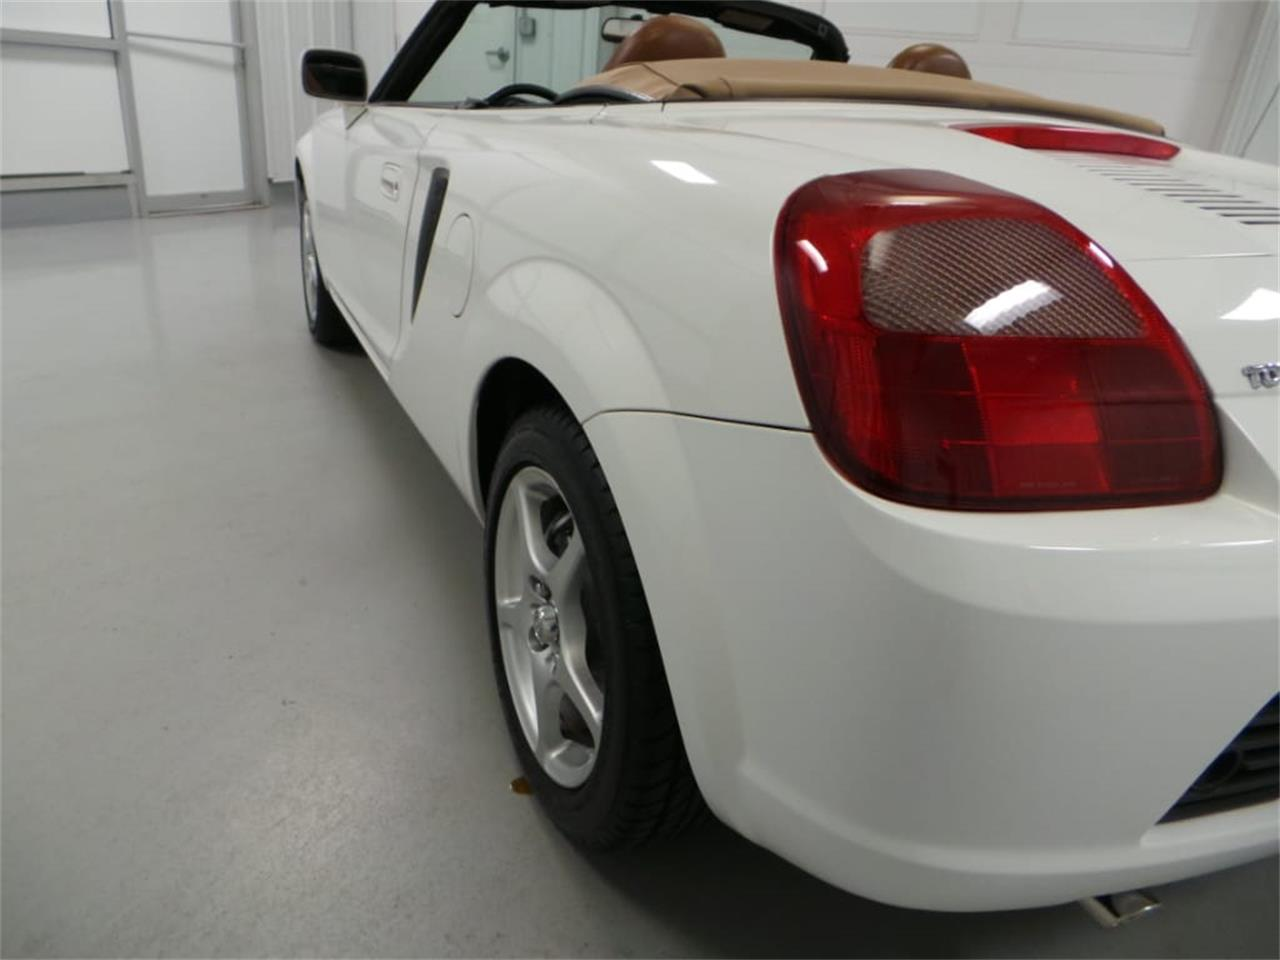 Large Picture of 2001 Toyota MR2 Spyder located in Virginia - $13,908.00 Offered by Duncan Imports & Classic Cars - JL89